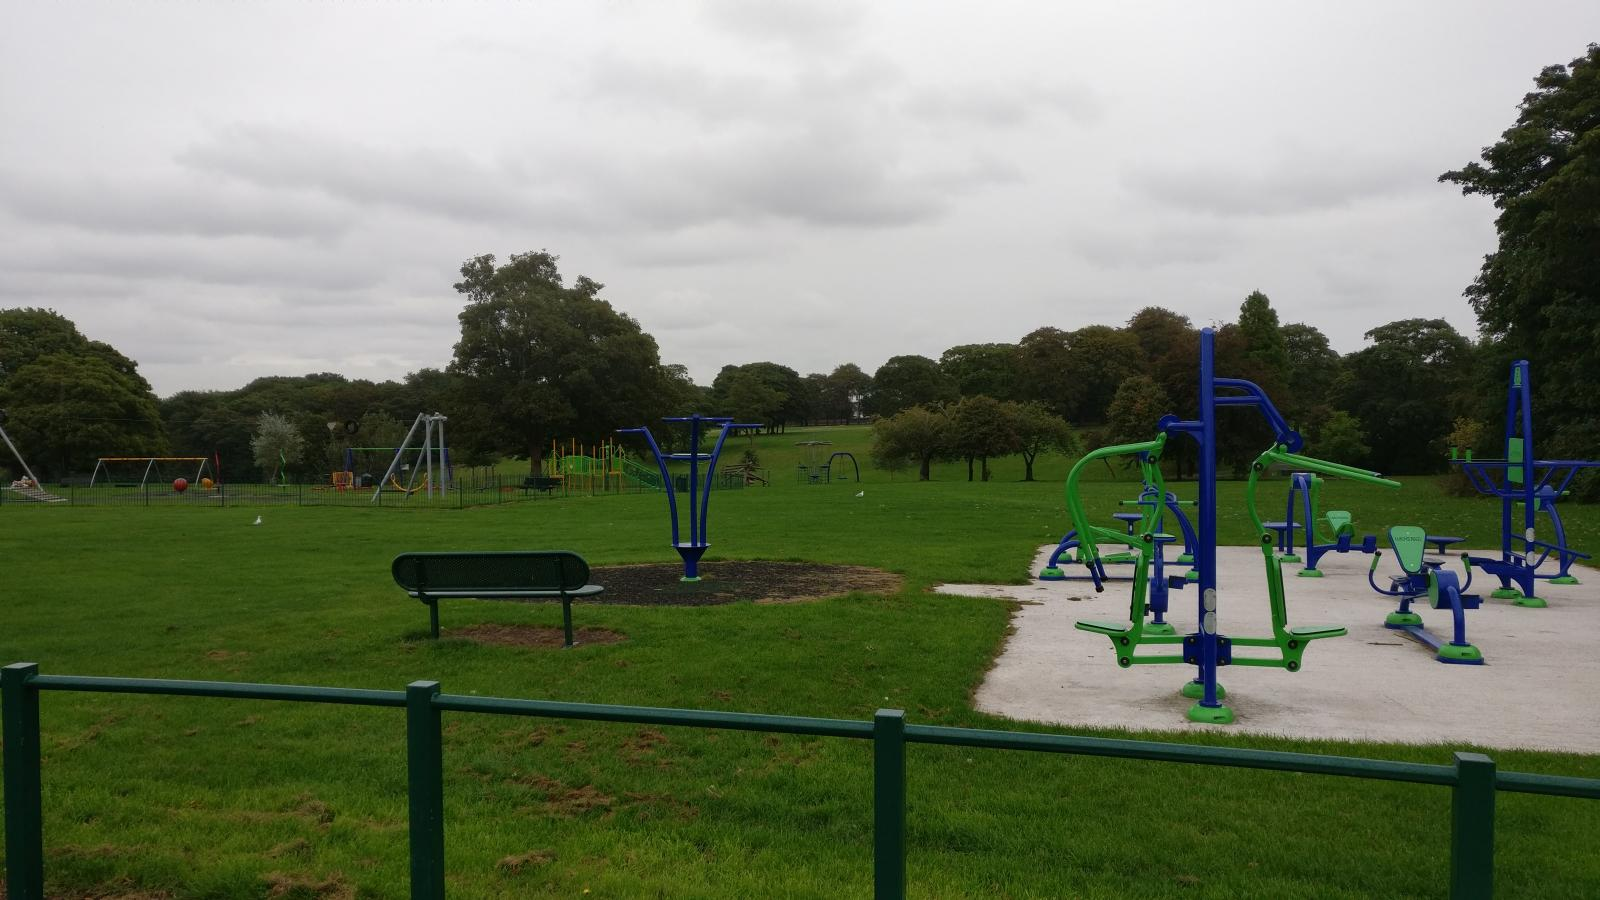 Sherdley Park Playground